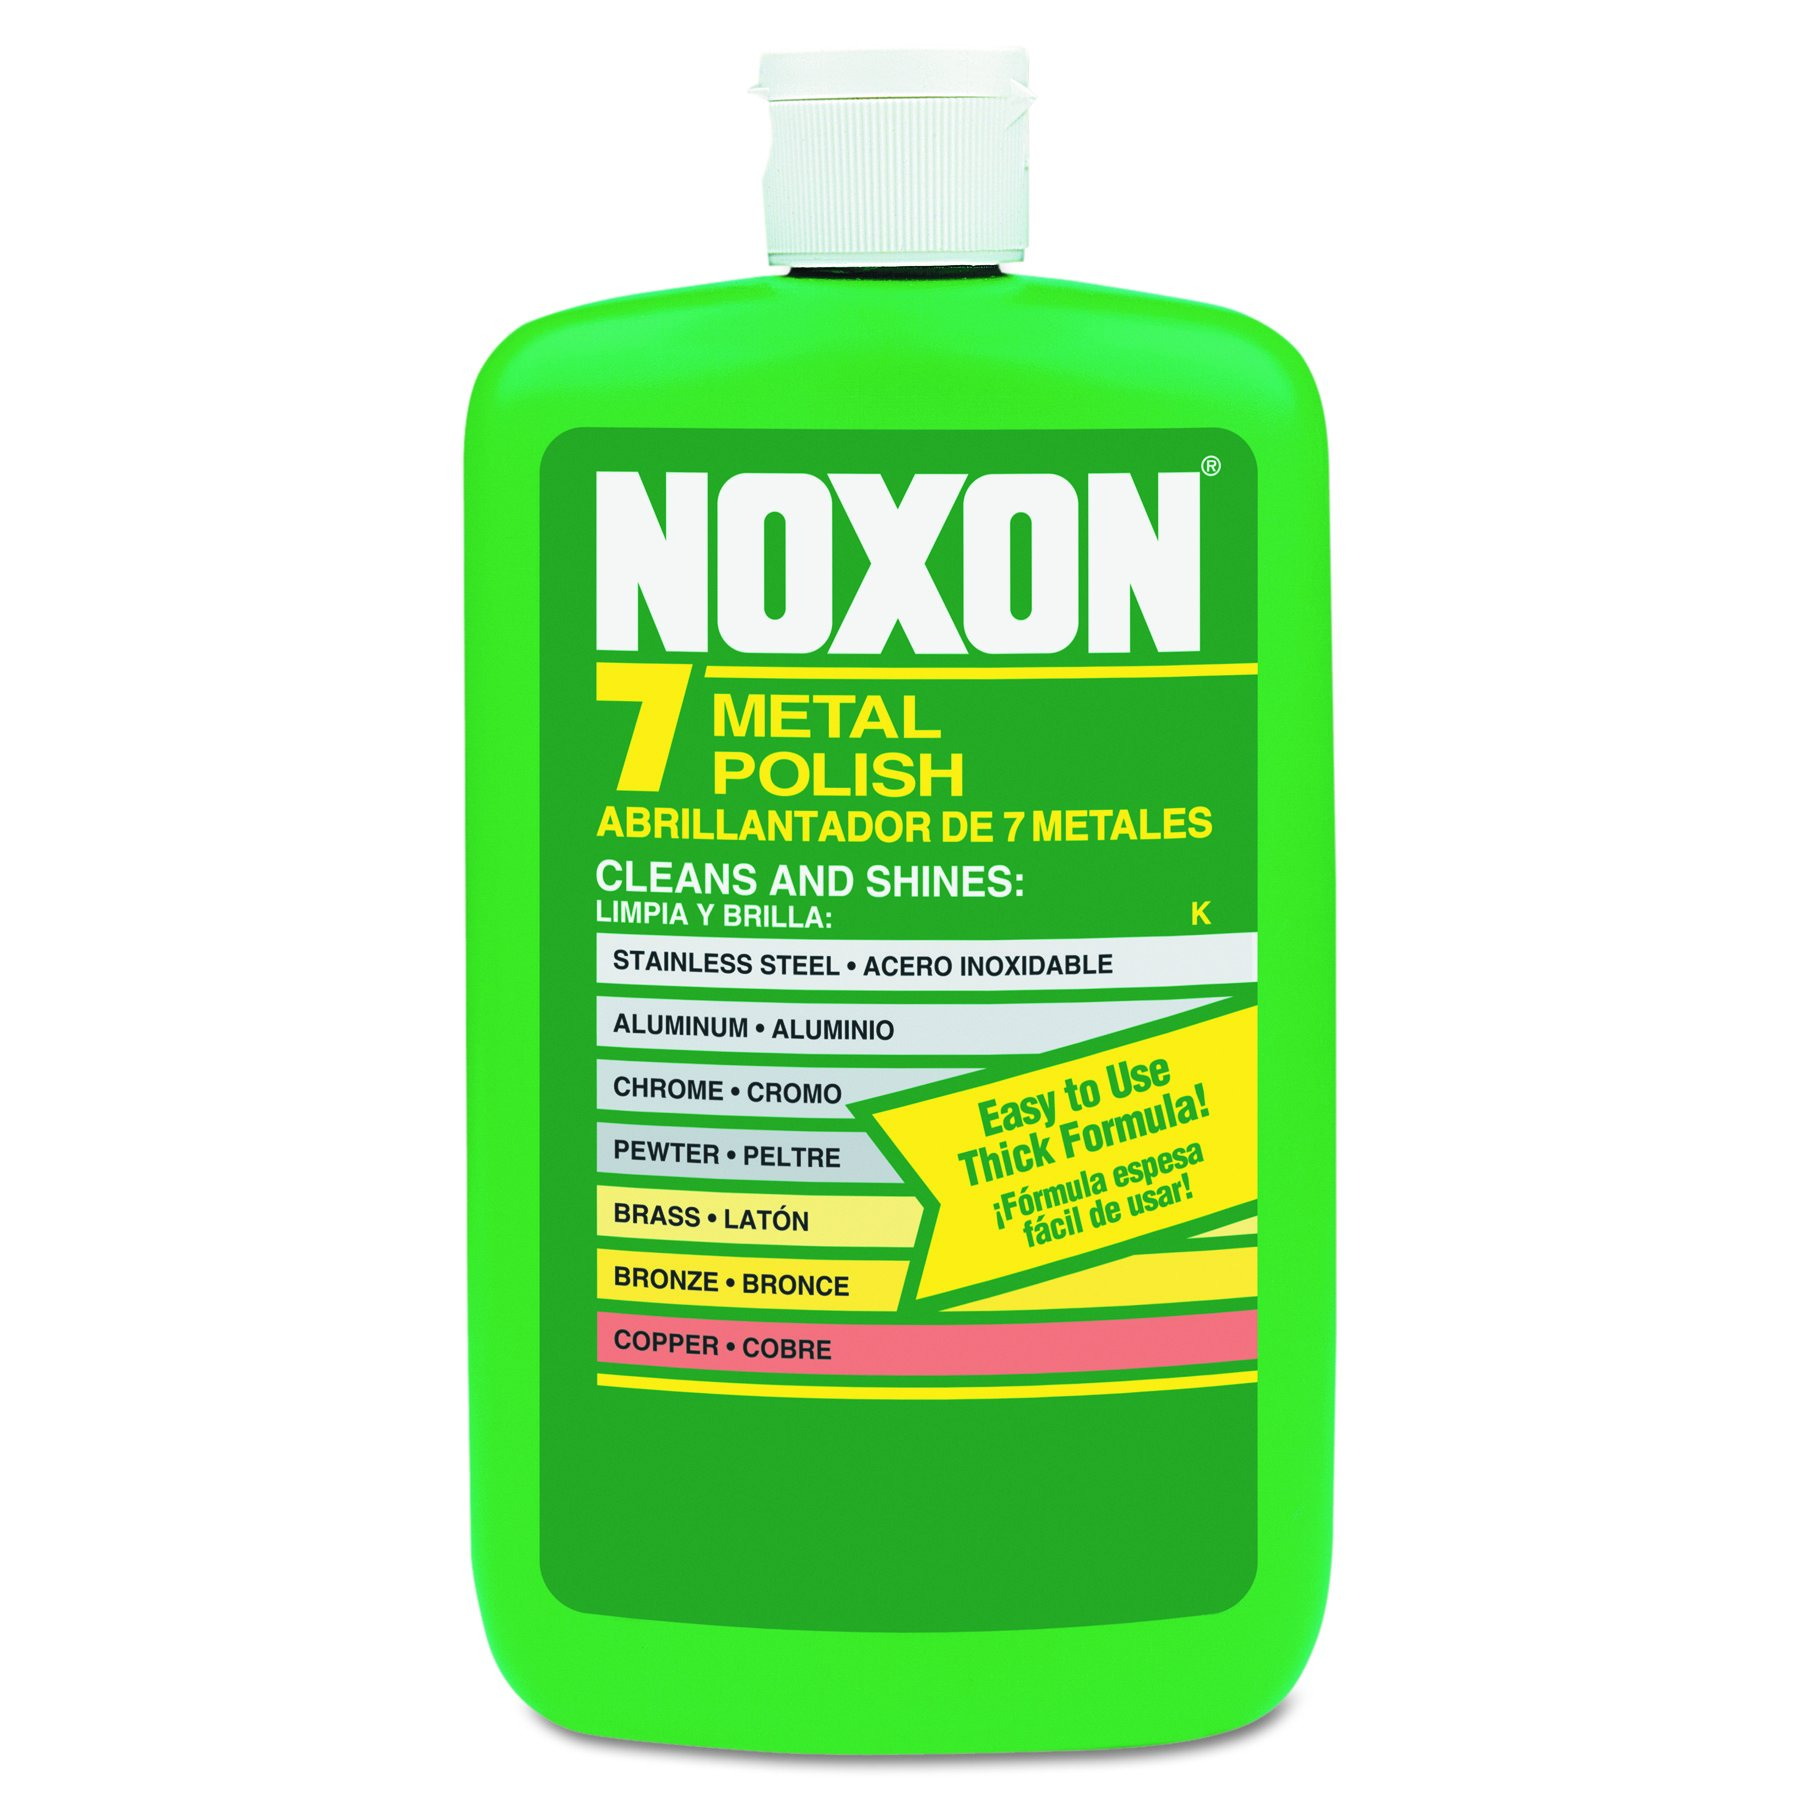 Noxon 7 Liquid Metal Polish, 144 fl oz (12 bottles x 12 oz) for Brass, Copper, Stainless, Chrome, Aluminum, Pewter & Bronze